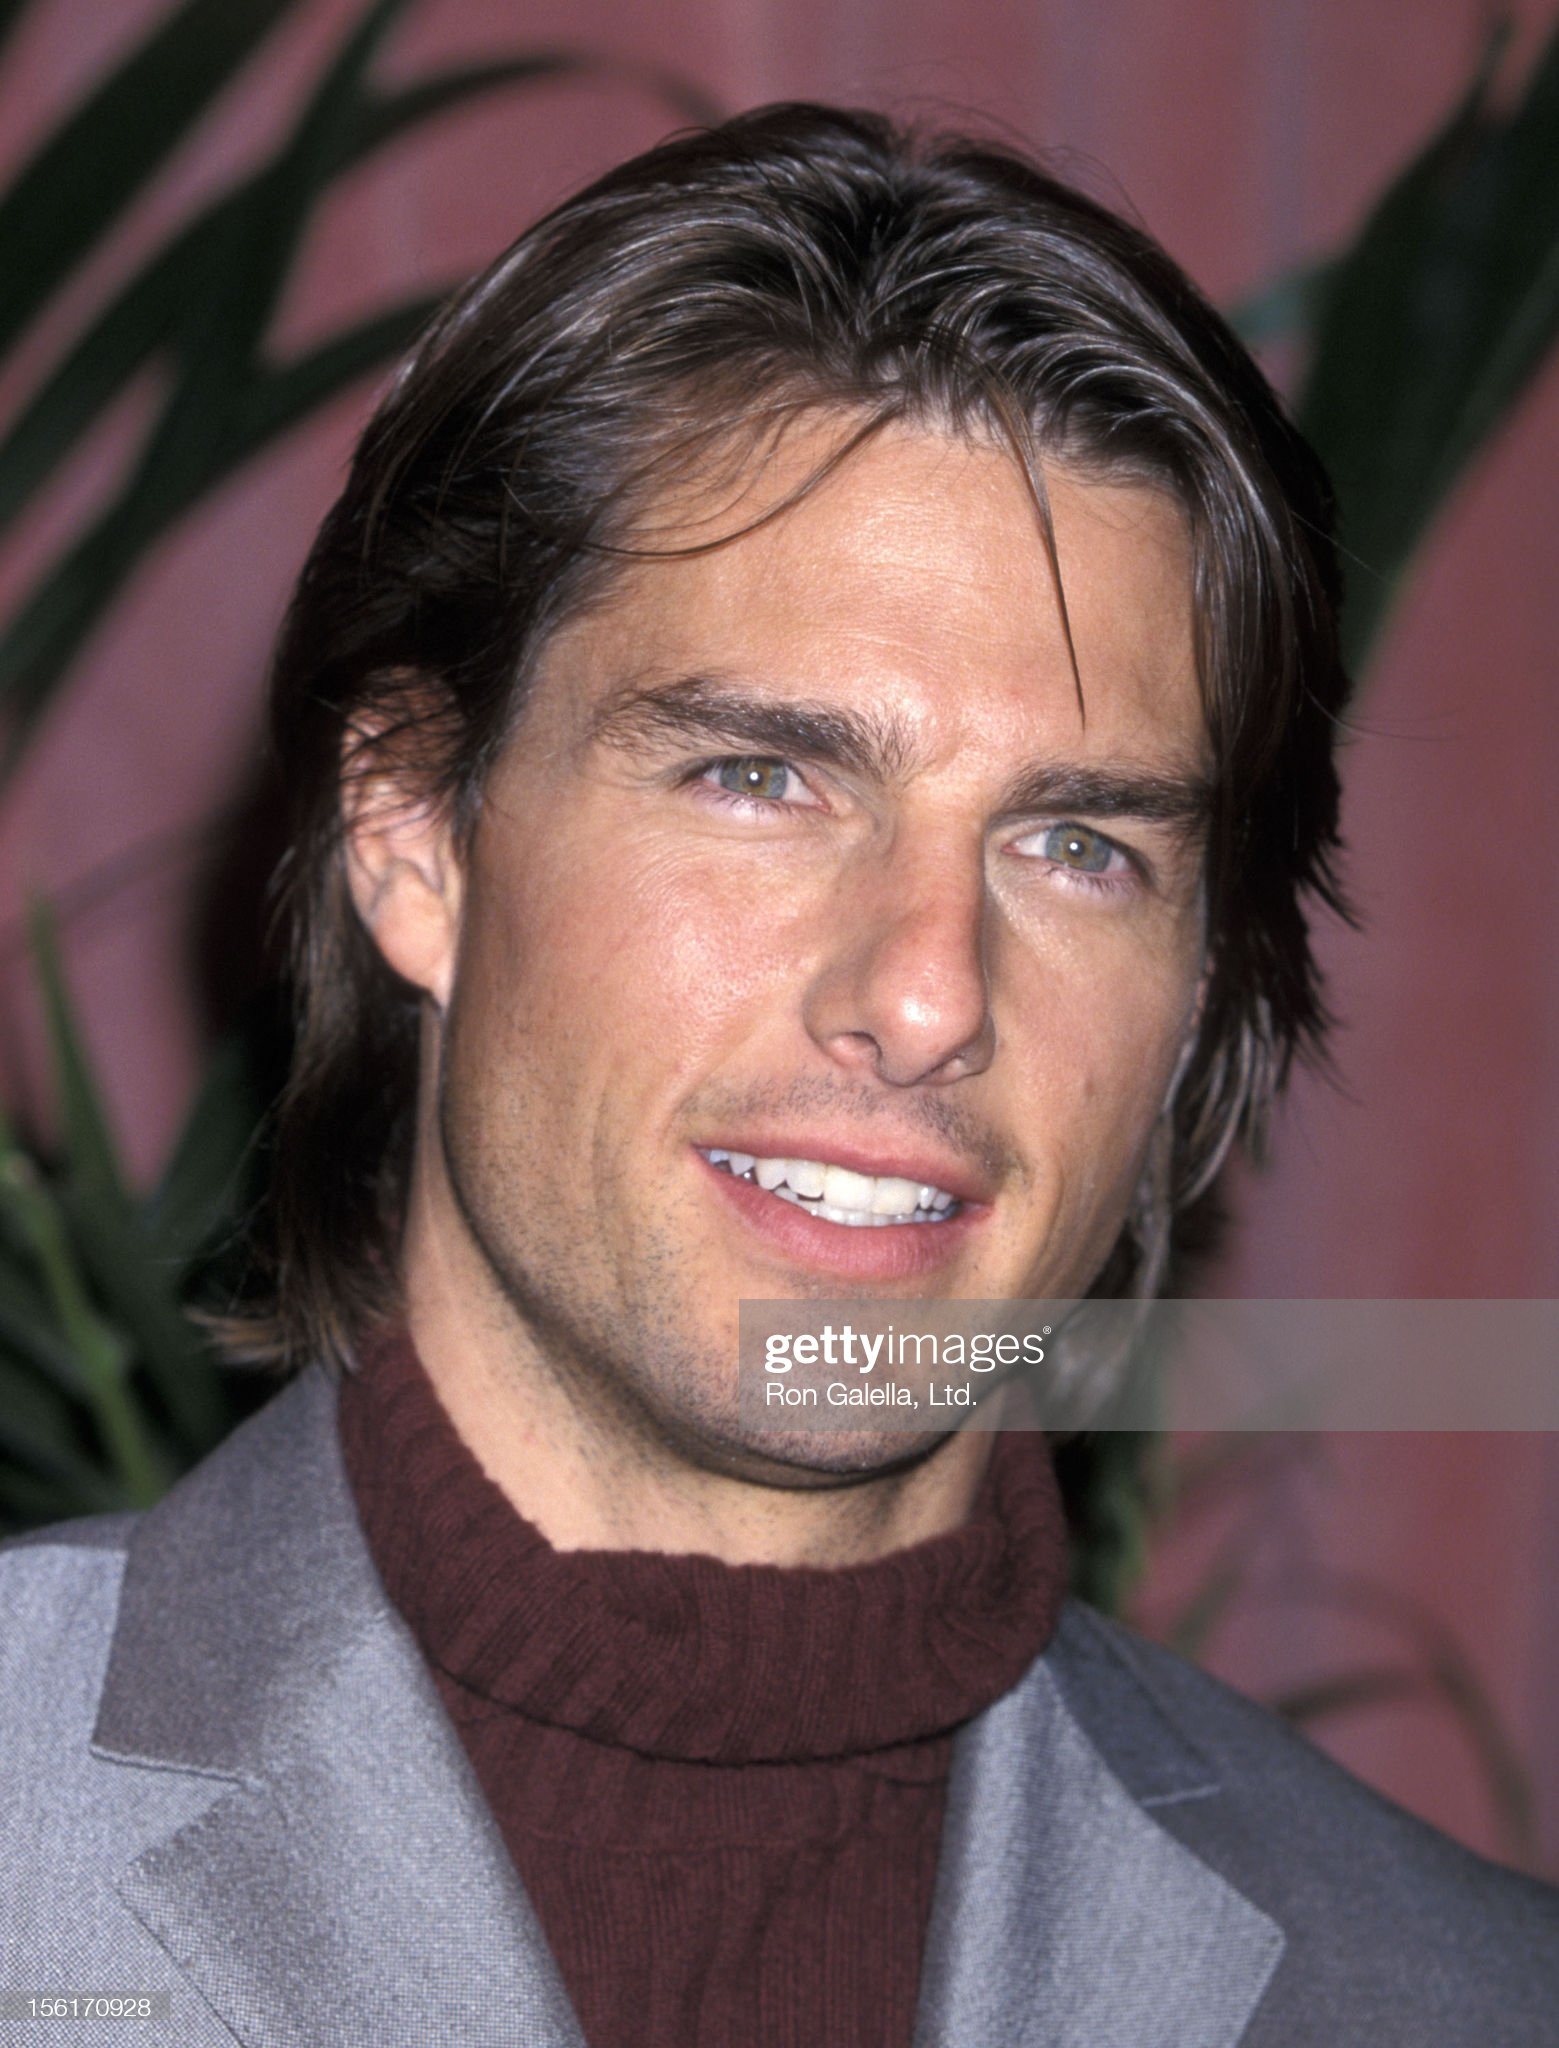 Tom Cruise (Galería de fotos) Actor-tom-cruise-attends-the-72nd-annual-academy-awards-nominees-on-picture-id156170928?s=2048x2048